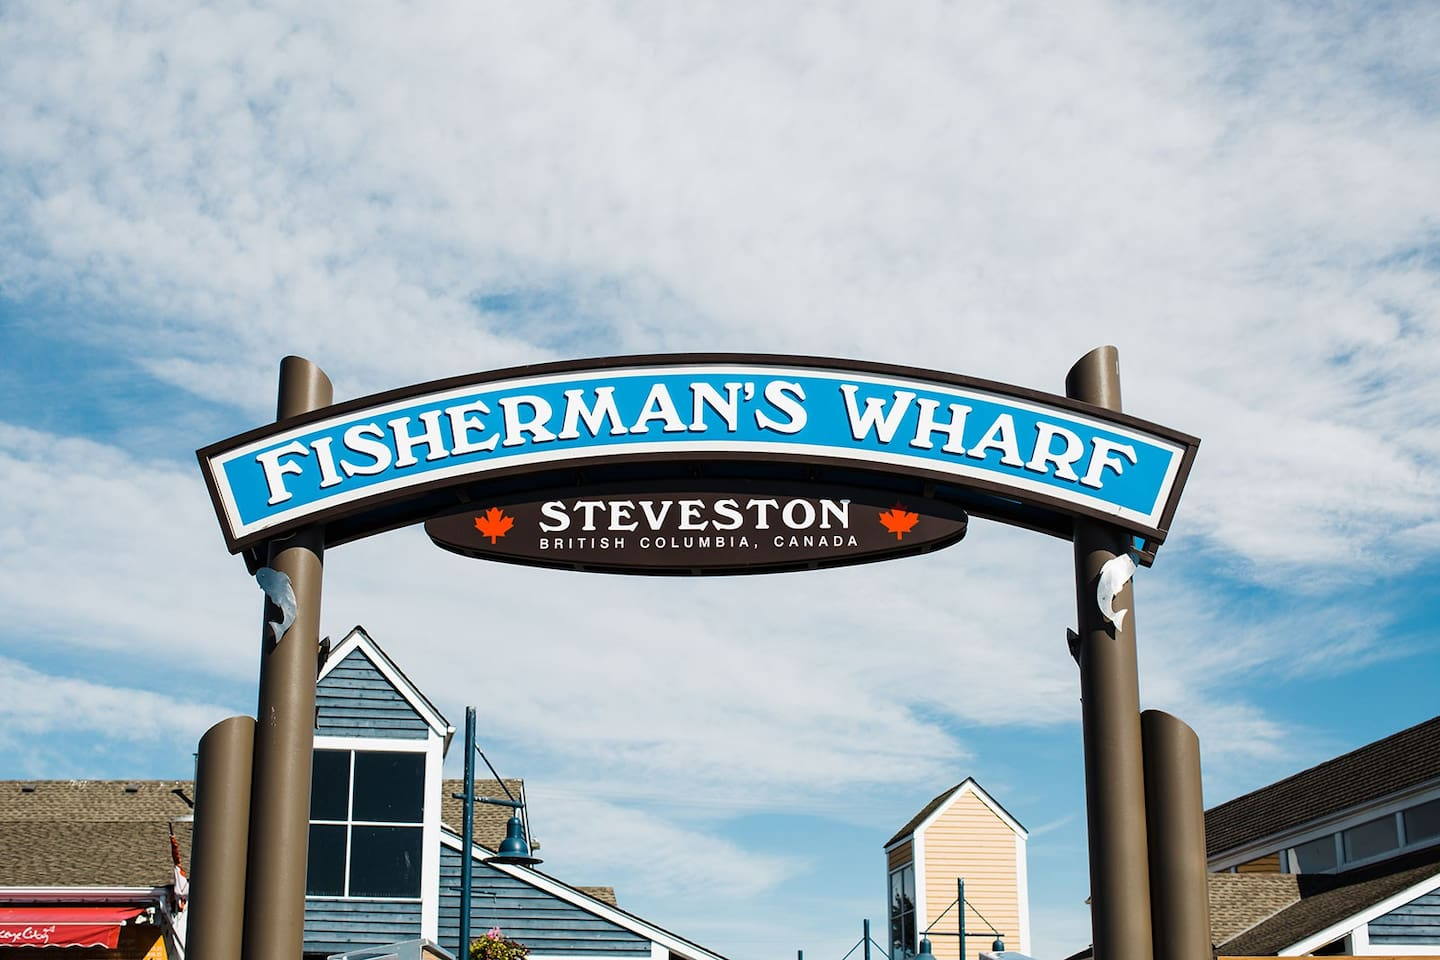 Located 5 minutes from the Historical Steveston Fisherman's Wharf!  Dining, shopping and adventures!